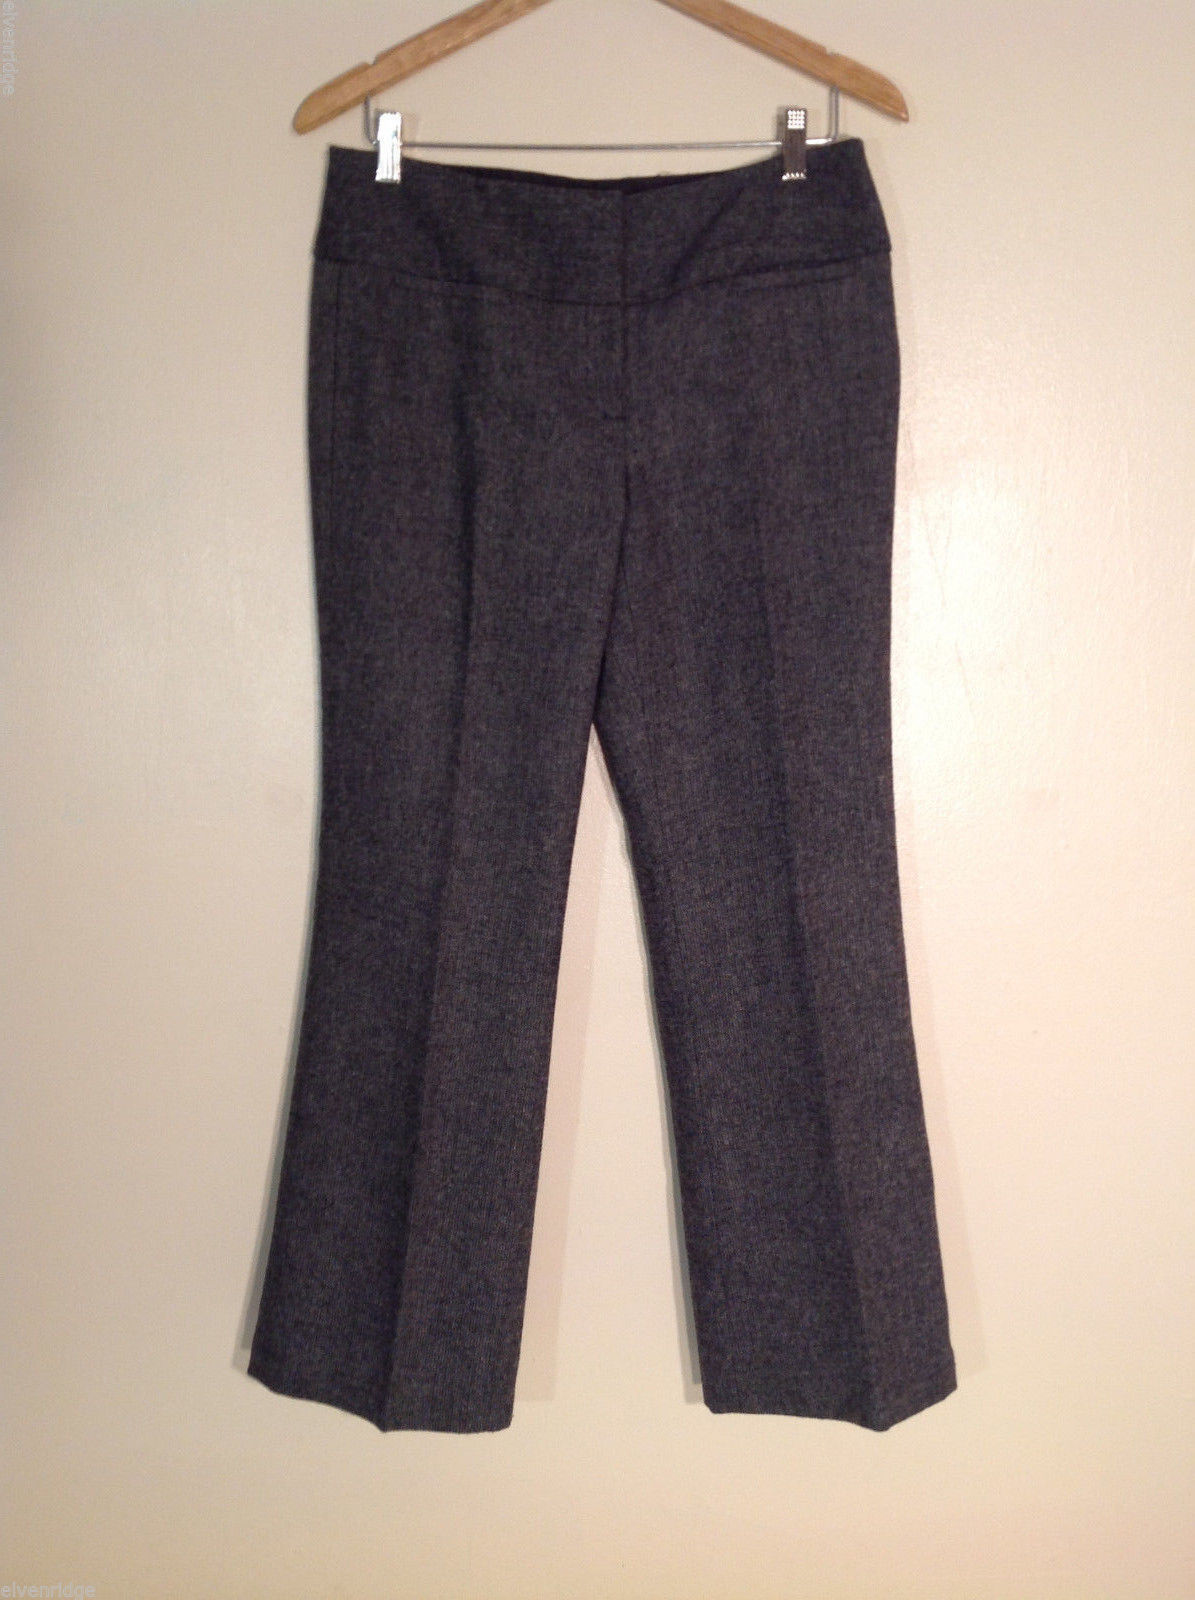 Dalia Collection Women's Petite Size 6 Pants Tweed Gray-Look (Black & White)